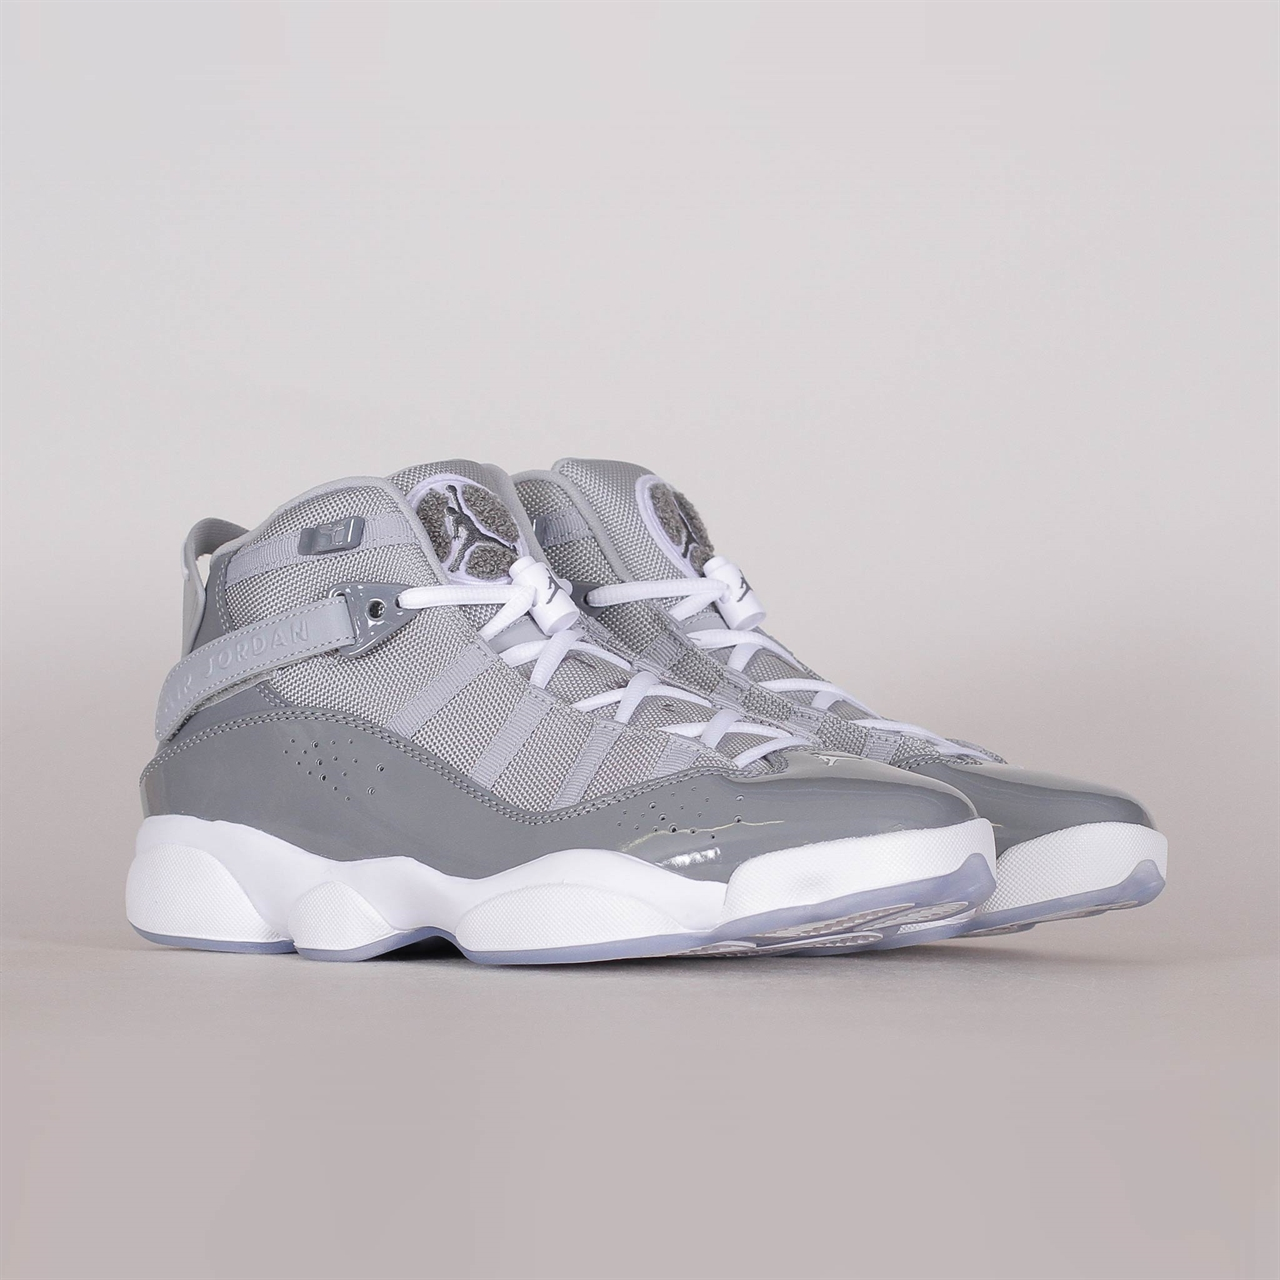 buy popular 2cbc6 7a8d0 Nike Air 6 Rings (322992-015). 169 169EUR   a pair. Colorway  Cool Grey  White-Wolf Grey